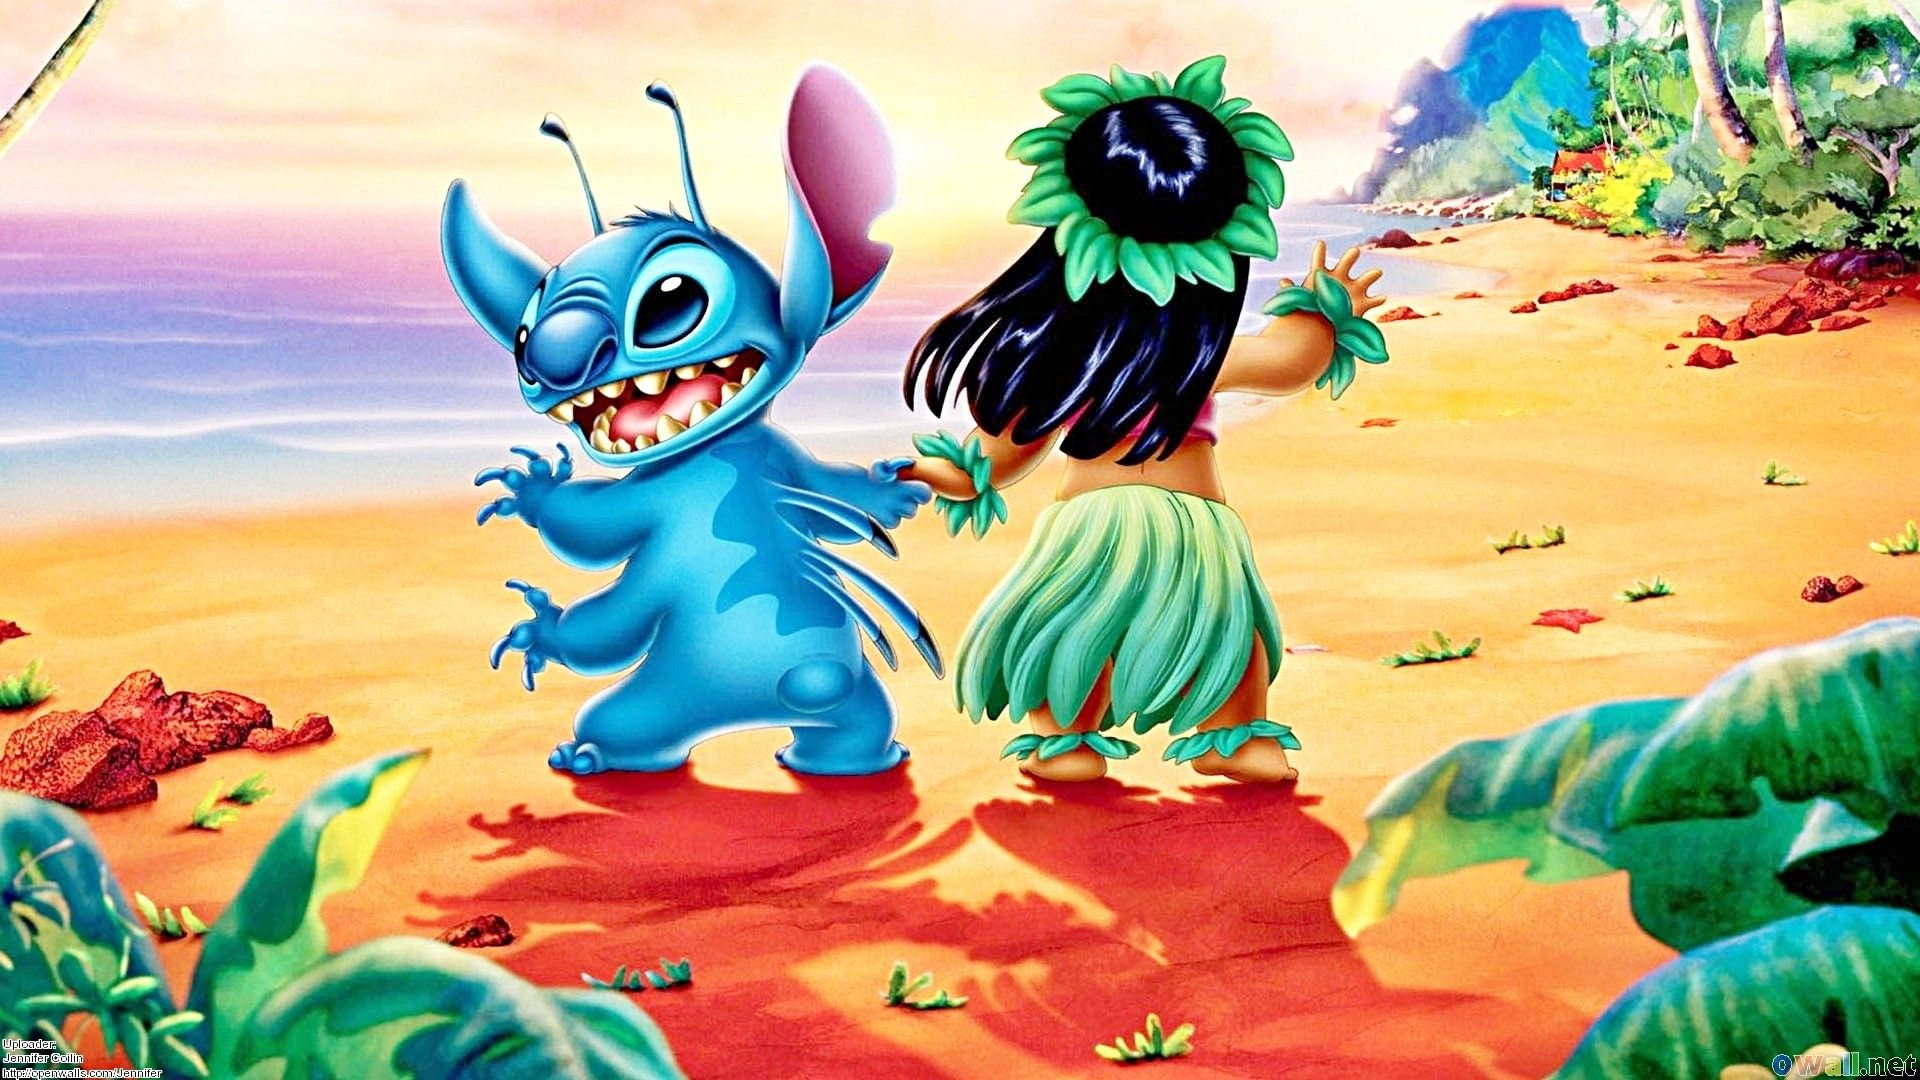 Lilo And Stitch Collection See All Wallpapers Wallpapers Background Movies Cute Disney Wallpaper Lilo And Stitch Lilo And Stitch 2002